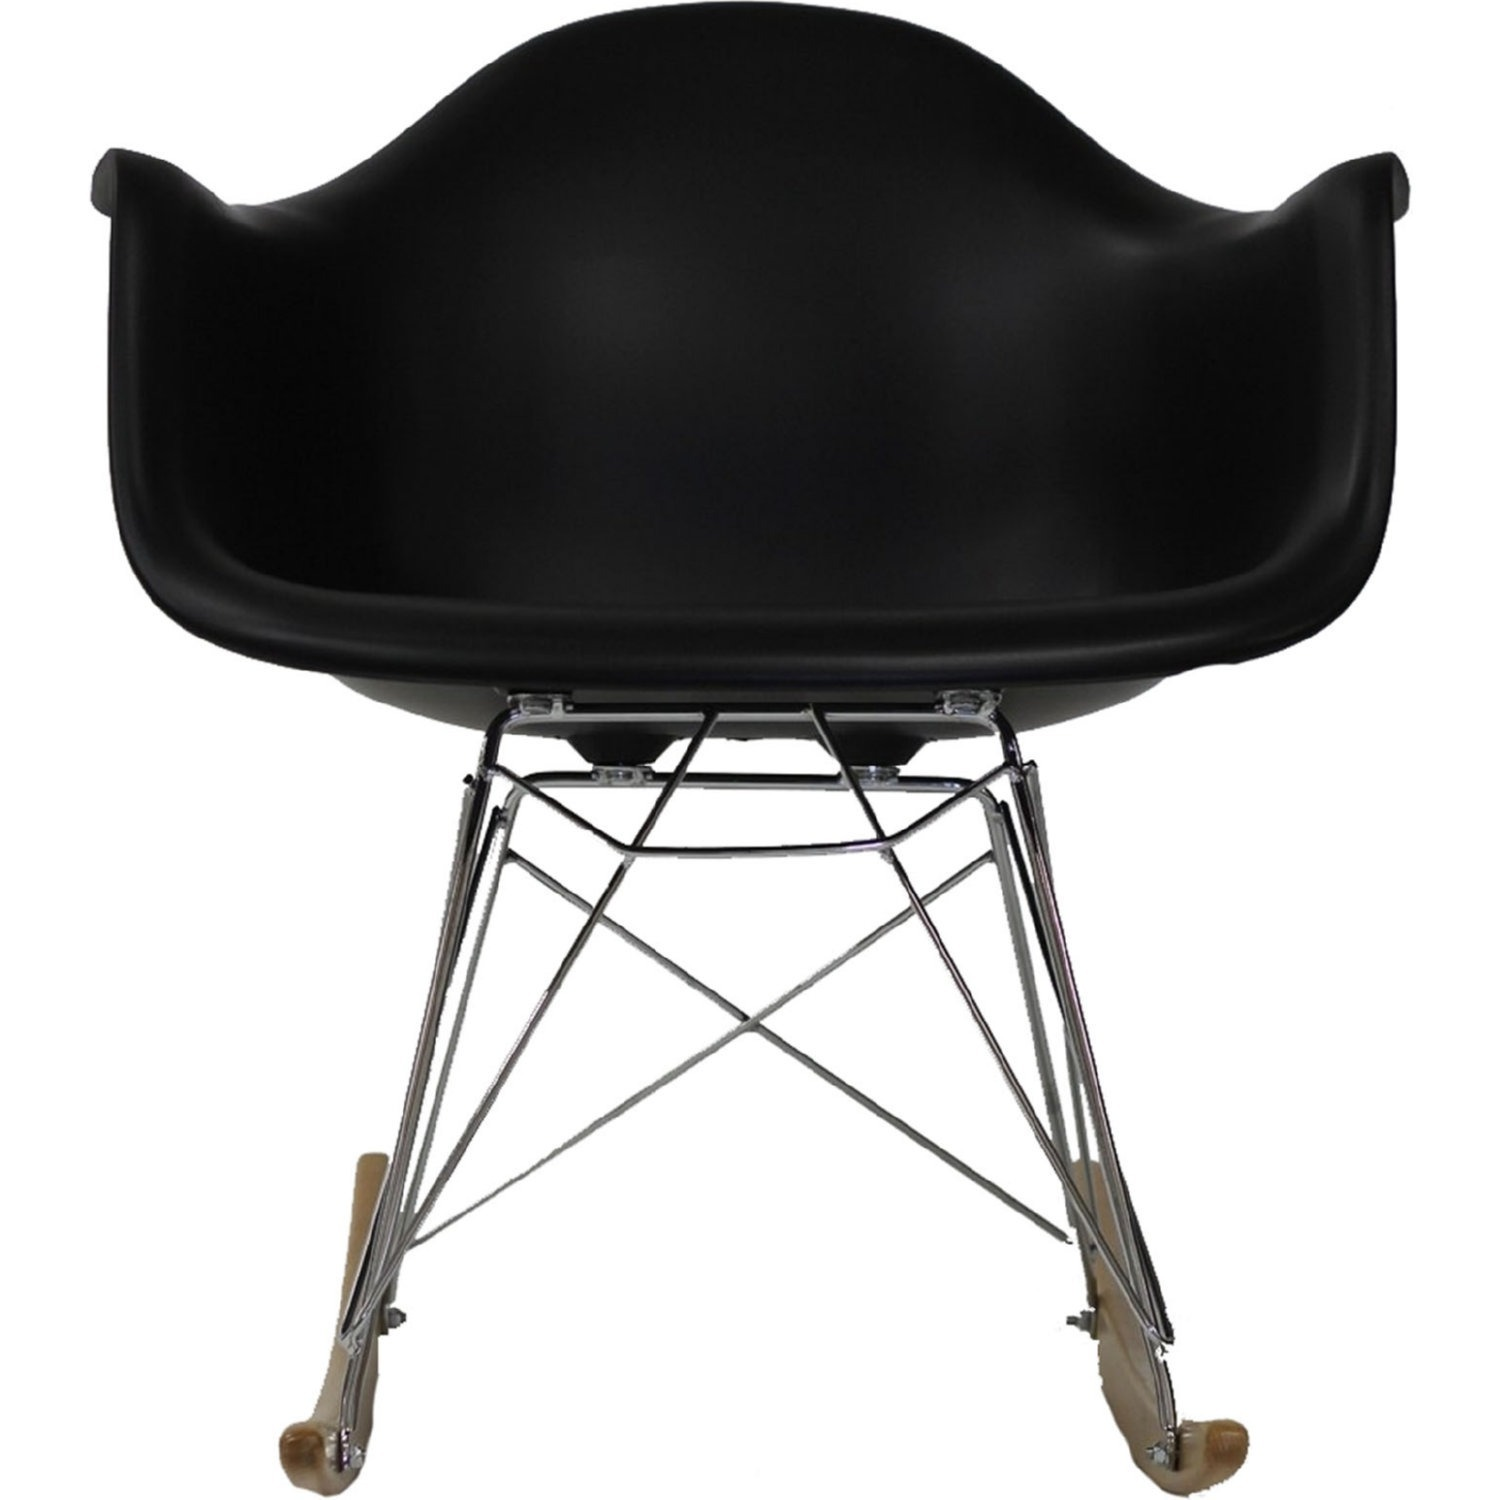 Retro Modern Lounge Chair In Black W/ Chrome Base - image-1